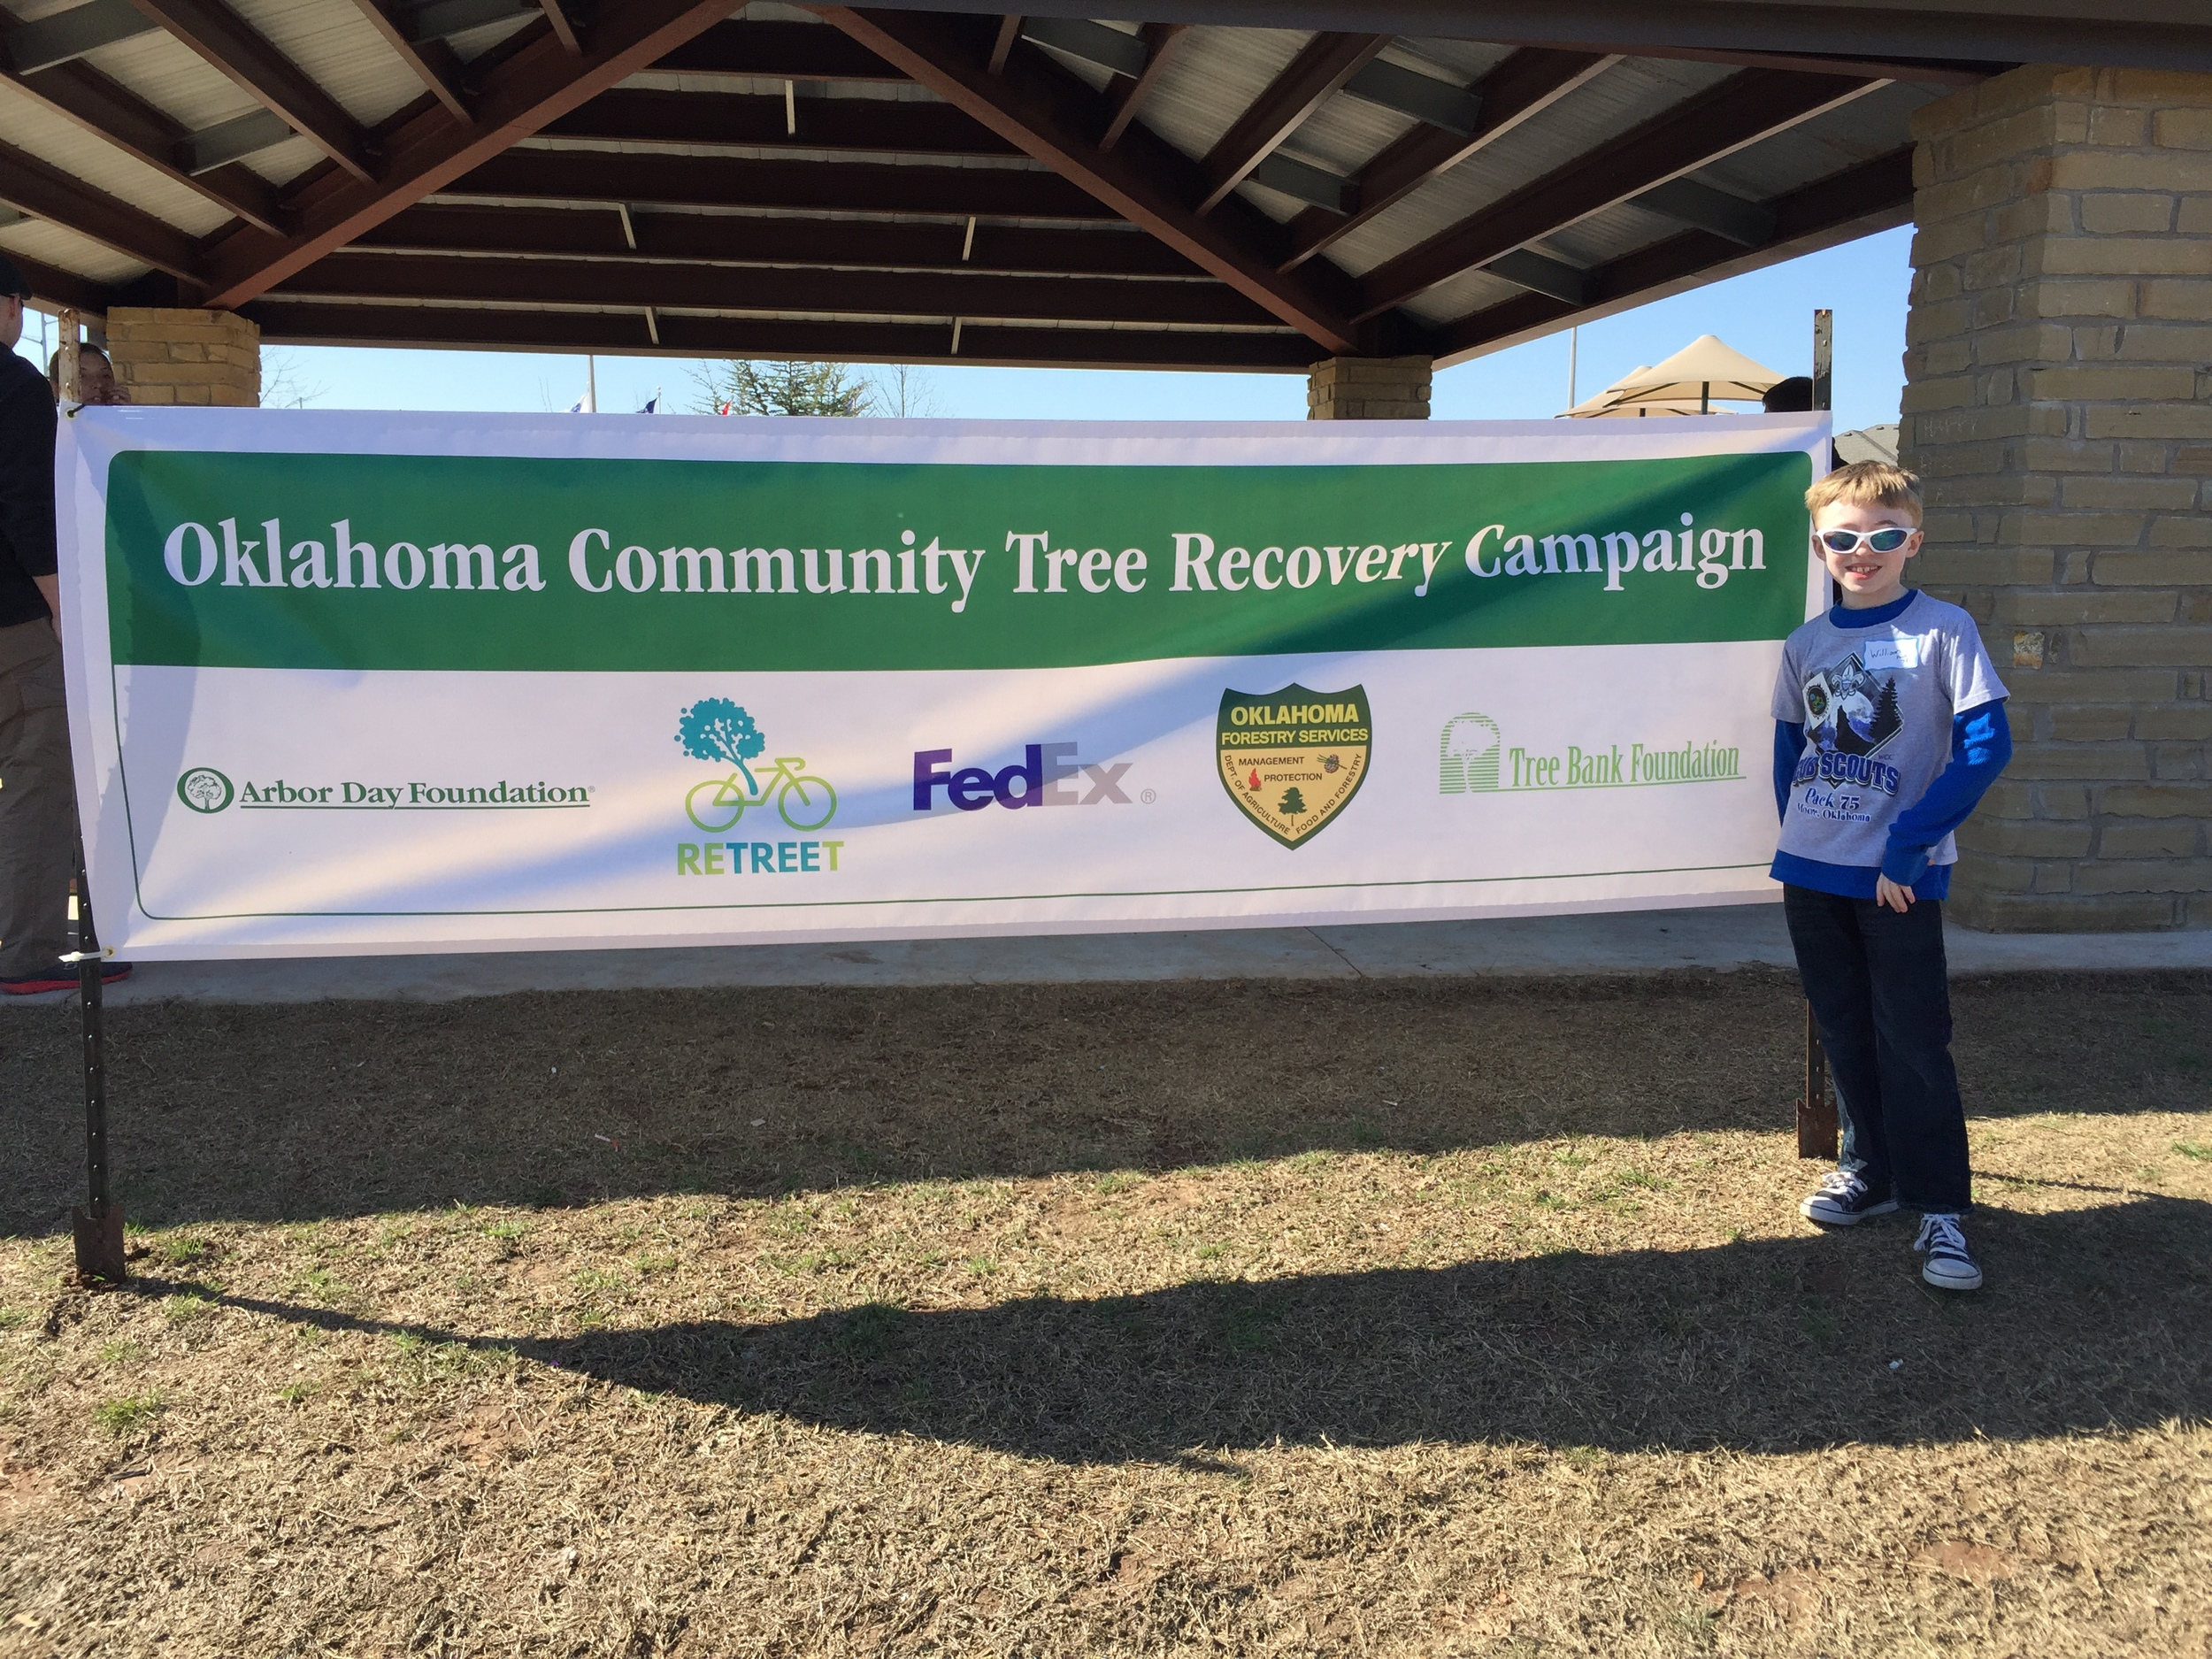 CLICK HERE TO VIEW THE PHOTO ALBUM OF OKC RETREET